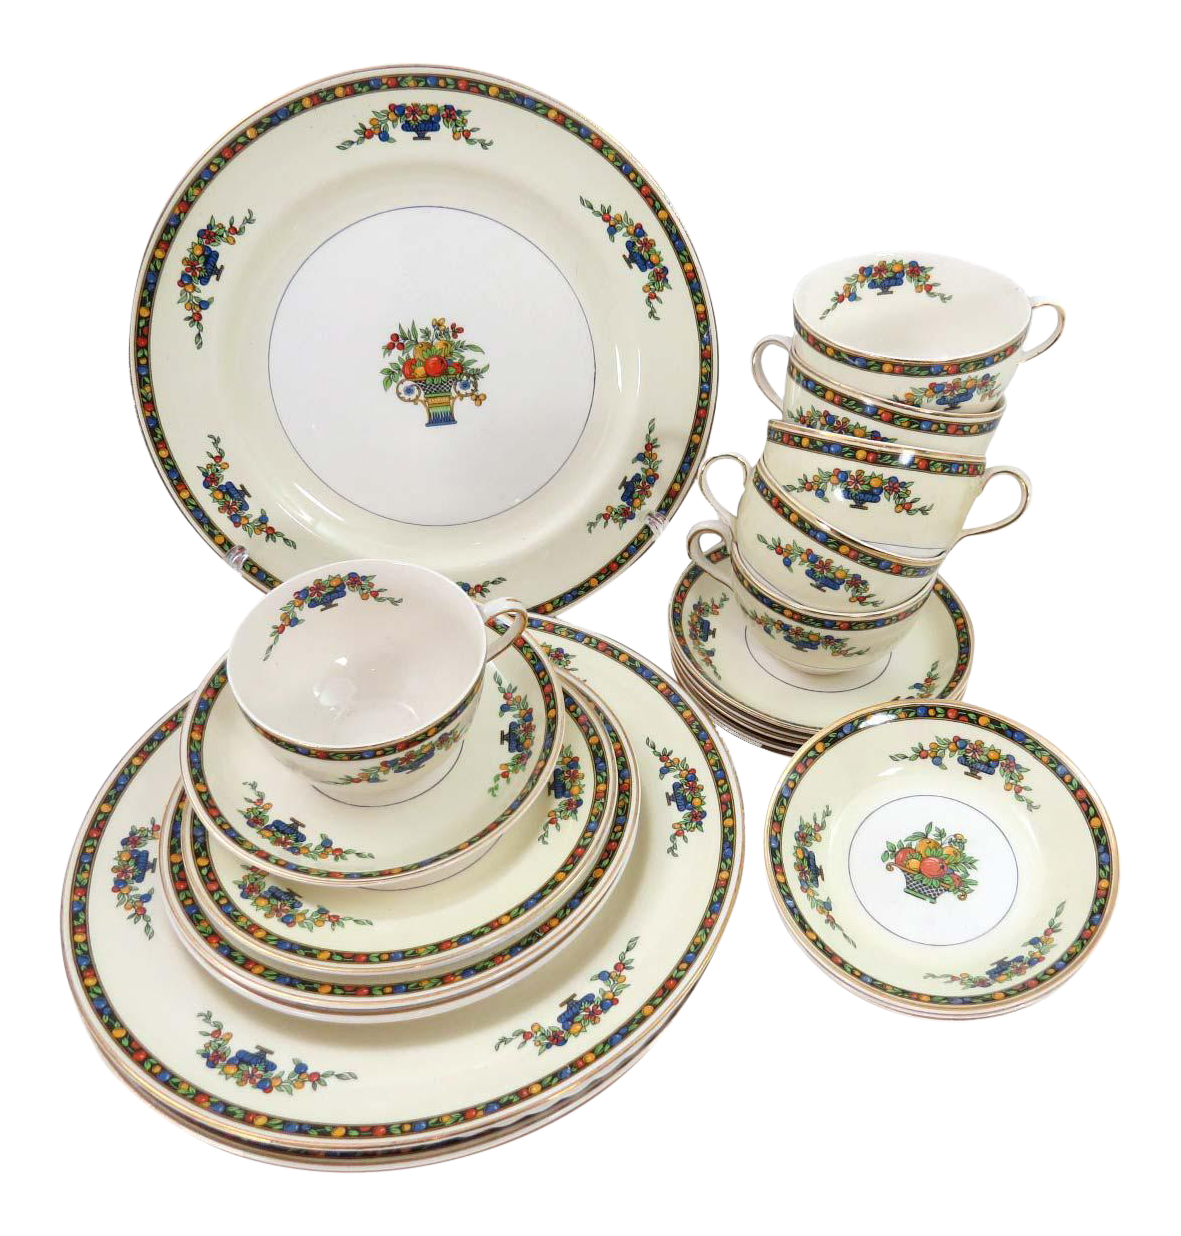 Vintage Johnson Brothers Pareek Minorca Dinnerware - Set of 24  sc 1 st  Chairish : johnson brothers dinnerware sets - pezcame.com